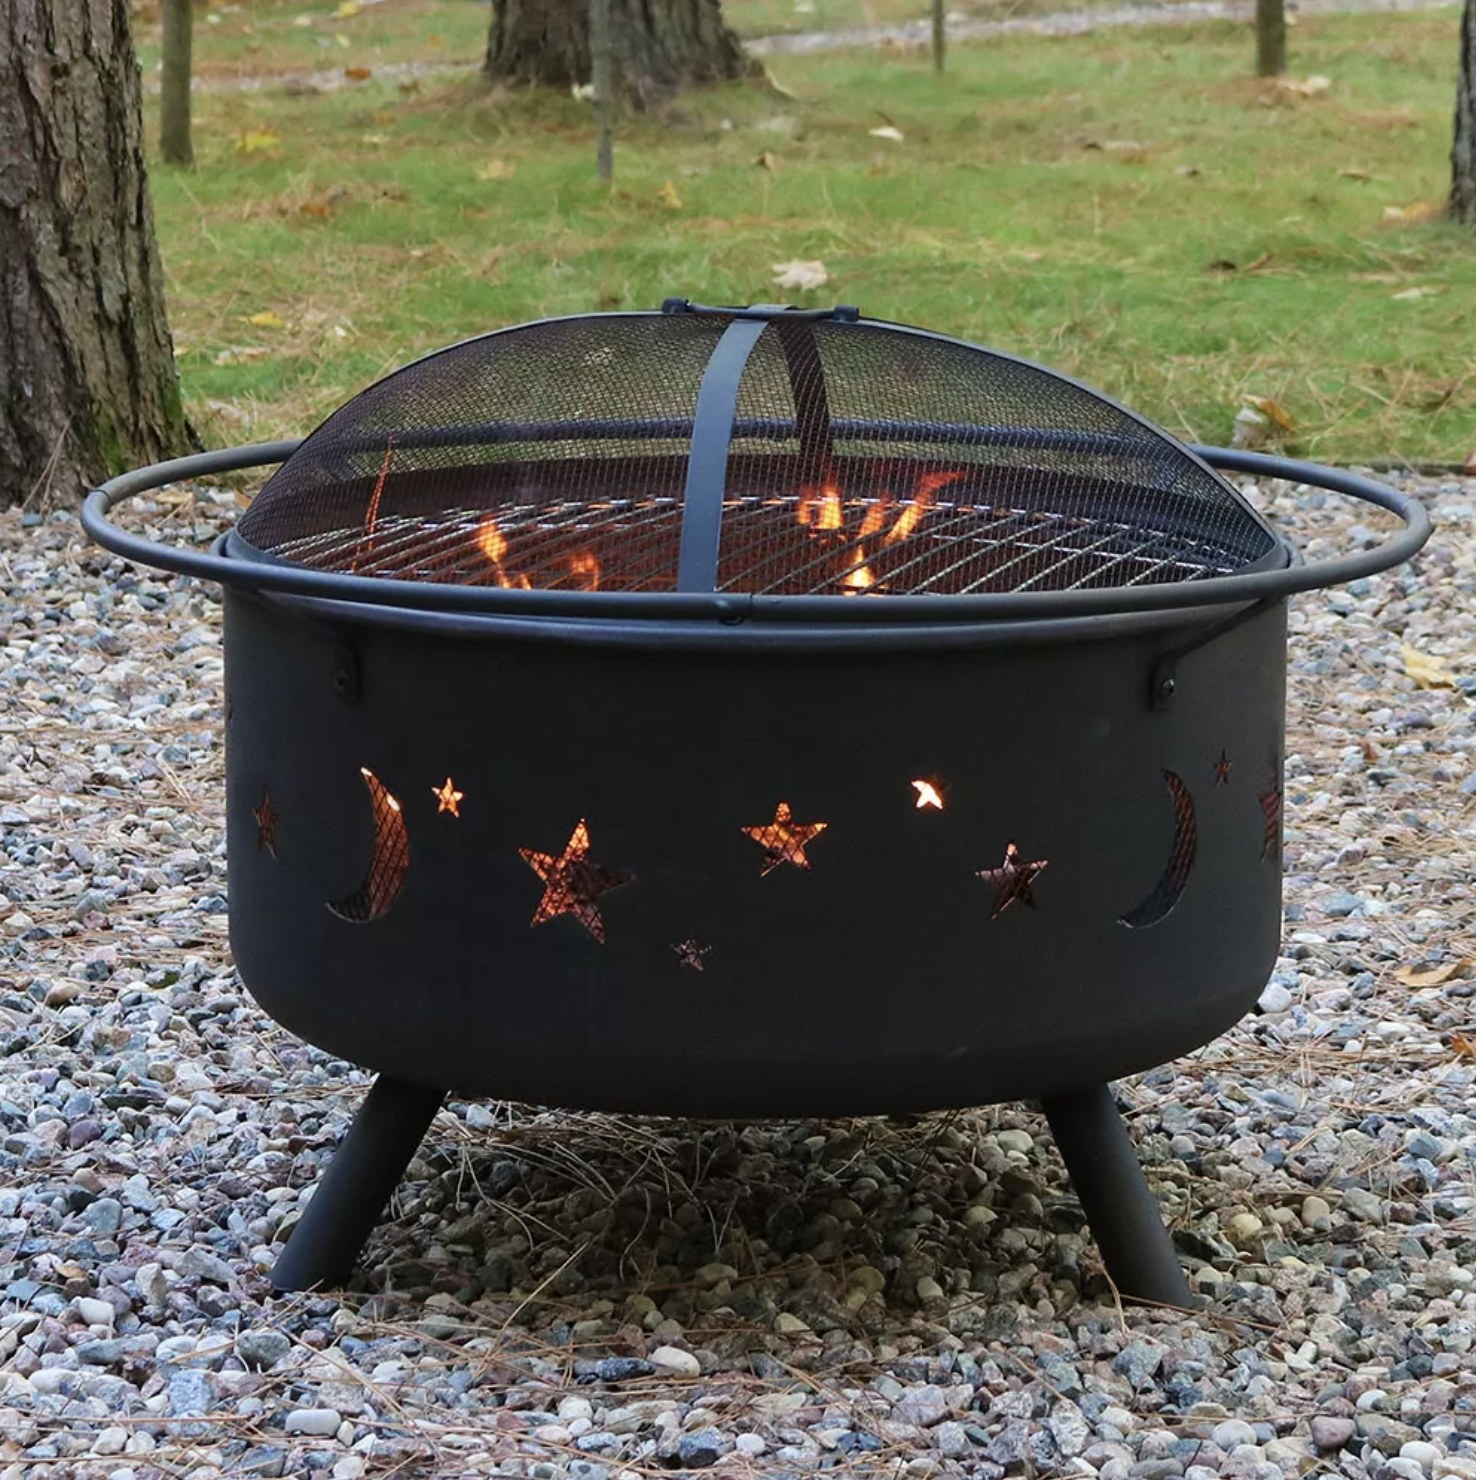 A wood-burning fire pit with a cooking grill is on with fire burning with a lid on top